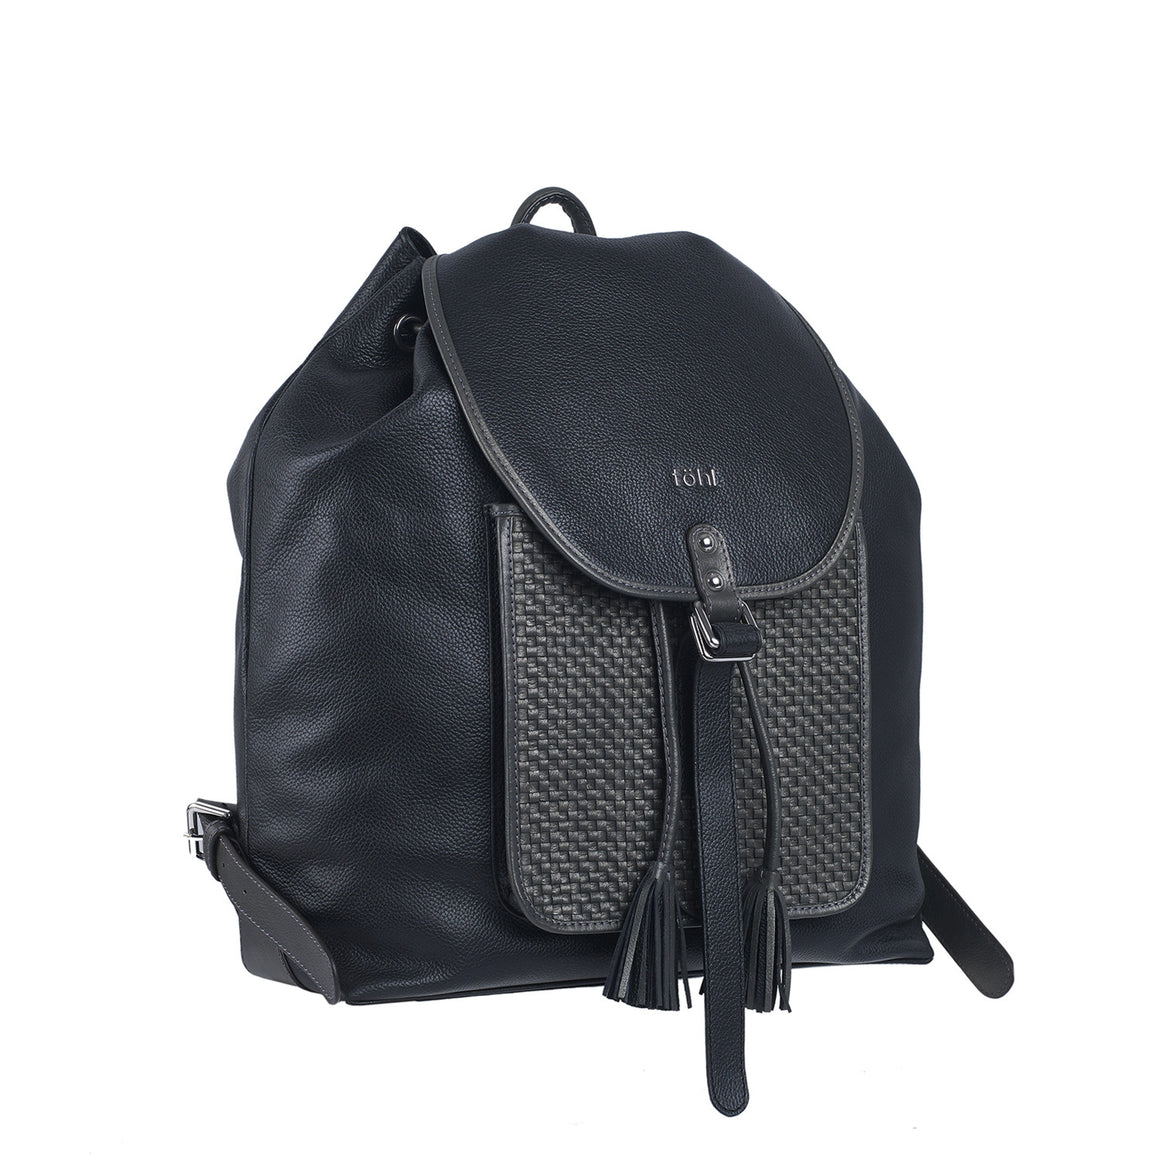 BP 0004 - TOHL NAYARA WOMEN'S FLAP FRONT BACKPACK - CHARCOAL BLACK